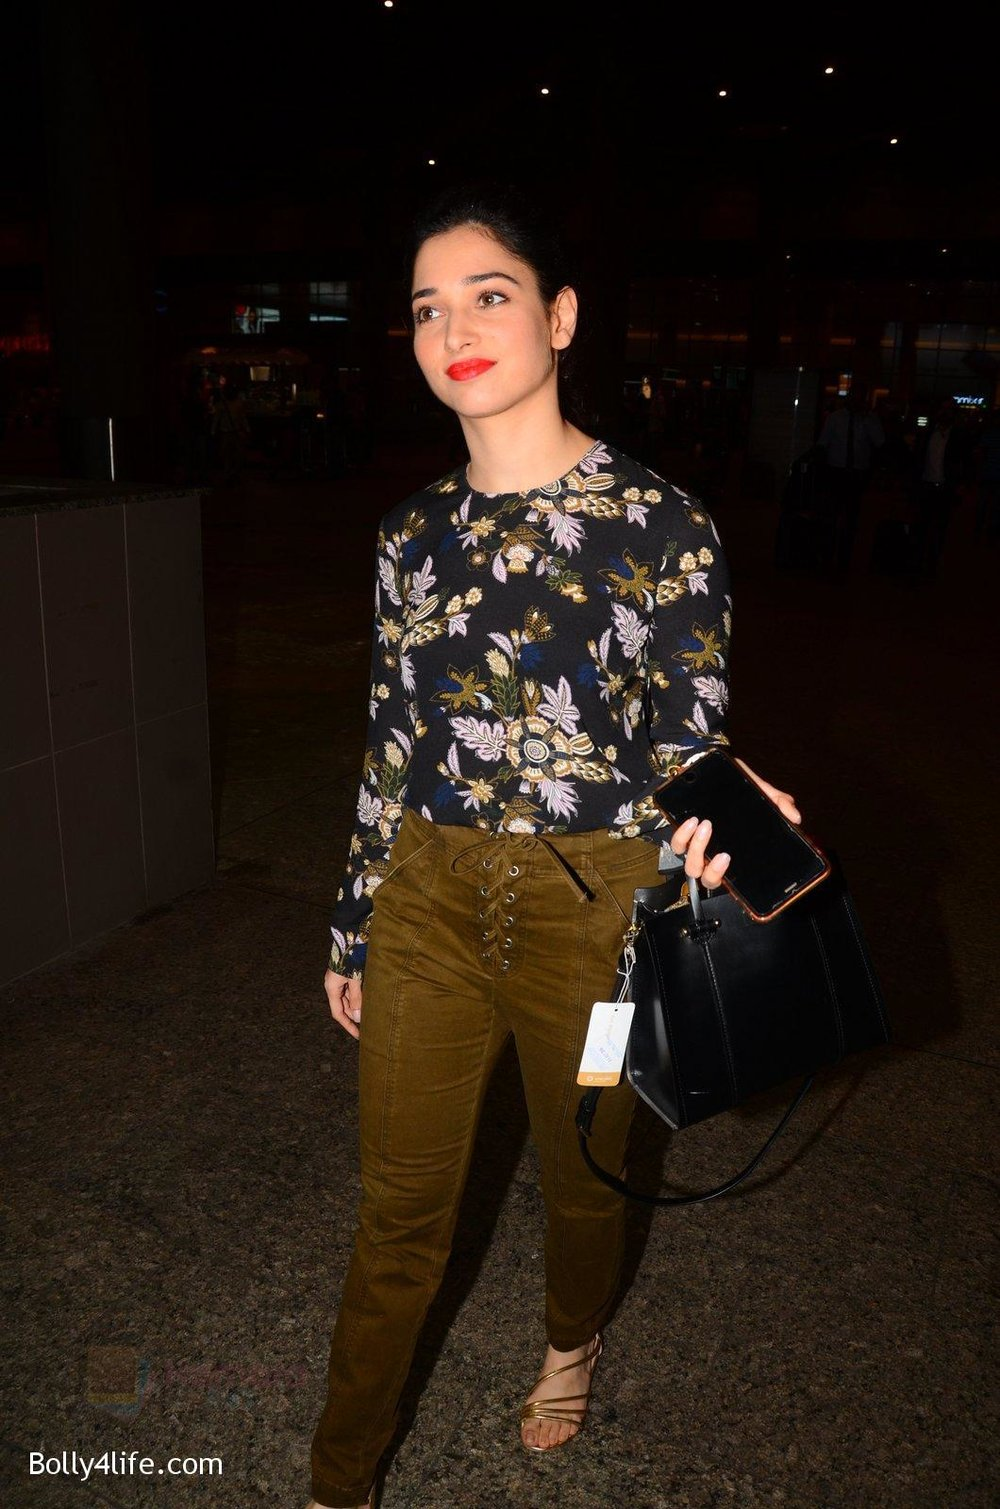 Tamannaah-Bhatia-snapped-at-airport-on-5th-Oct-2016-37.jpg